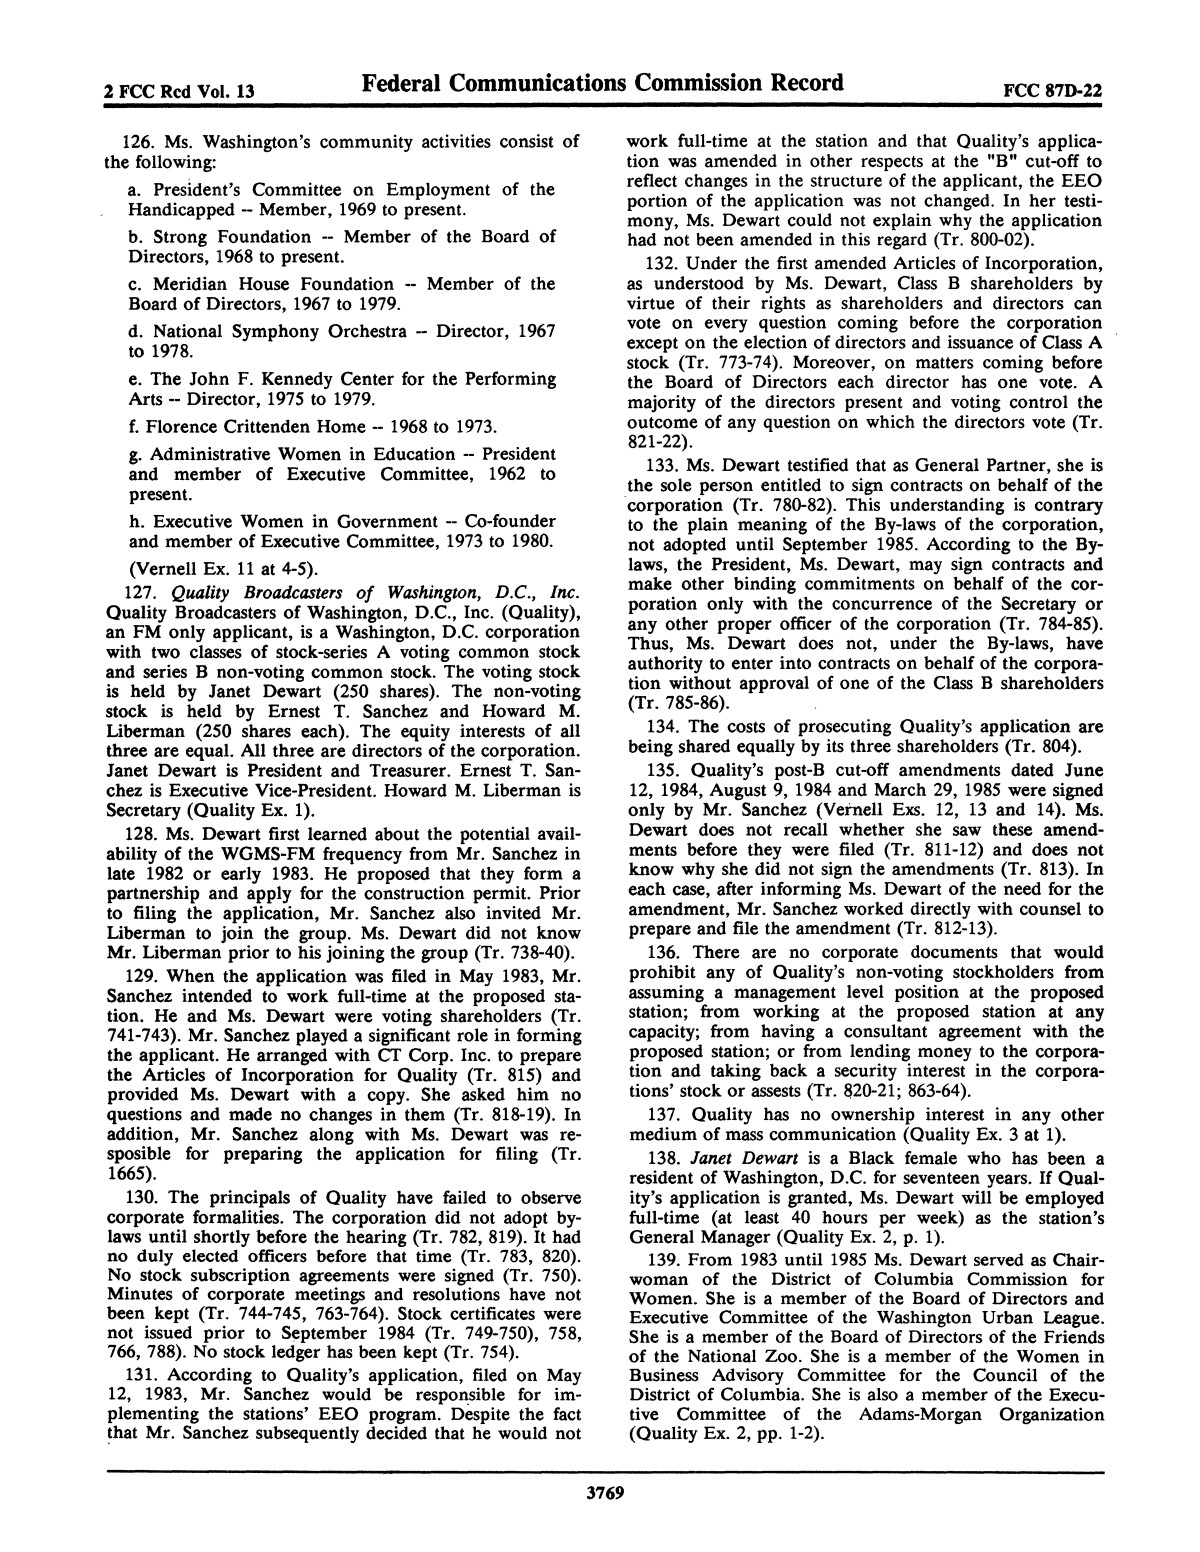 FCC Record, Volume 2, No. 13, Pages 3683 to 4000, June 22 - July 2, 1987                                                                                                      3769